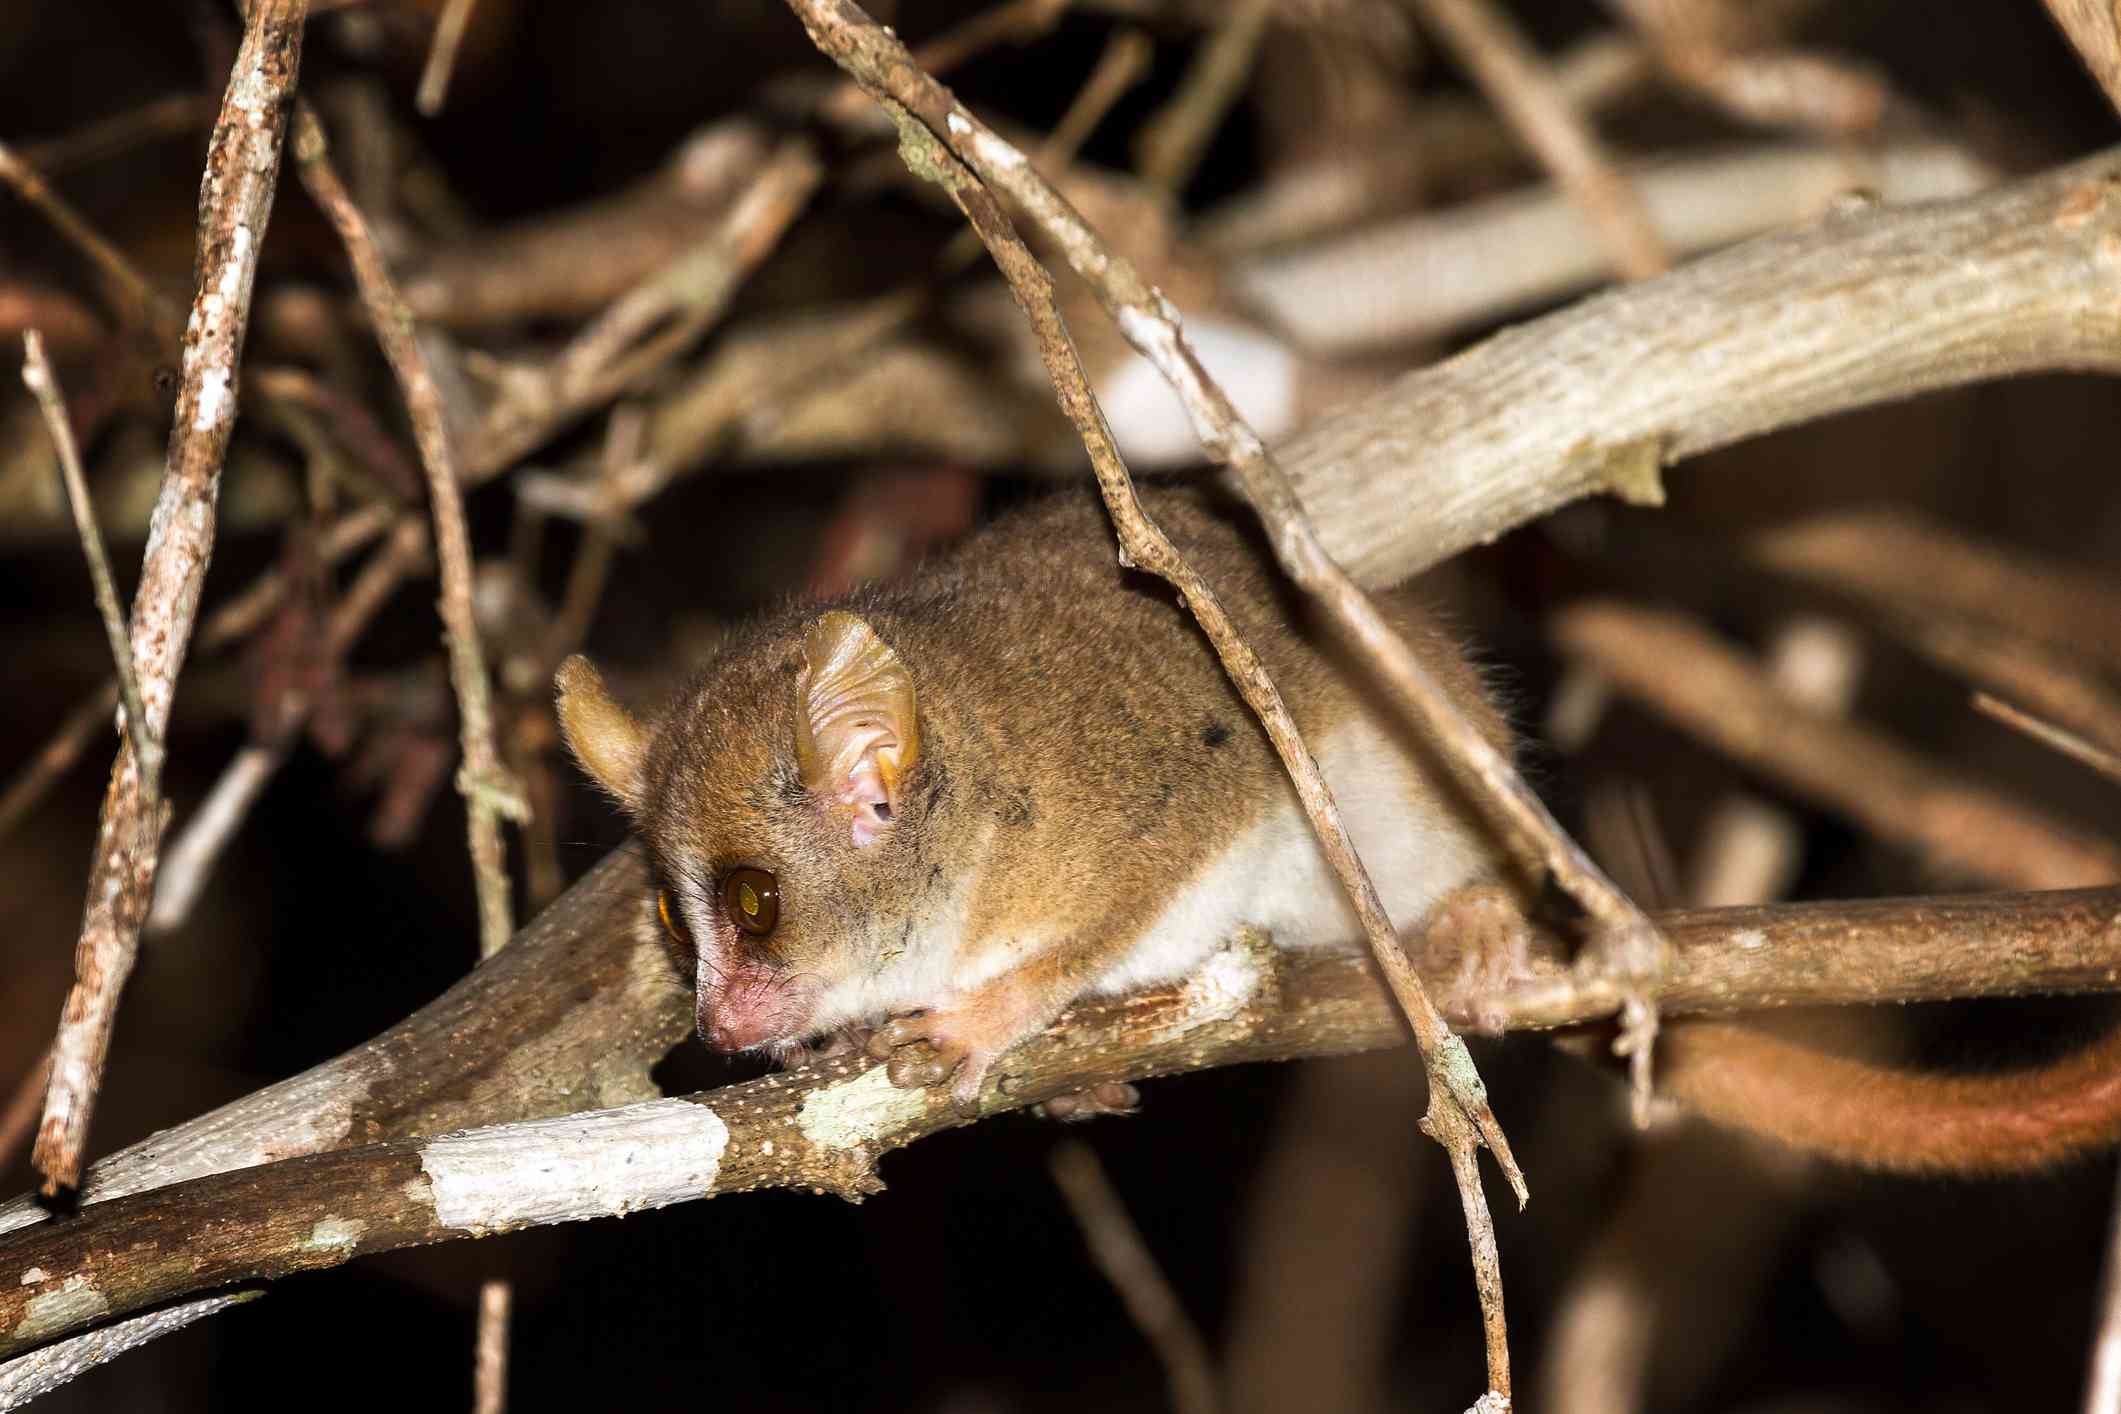 A brown and white Madame Berthe's mouse lemur on brown tree branches